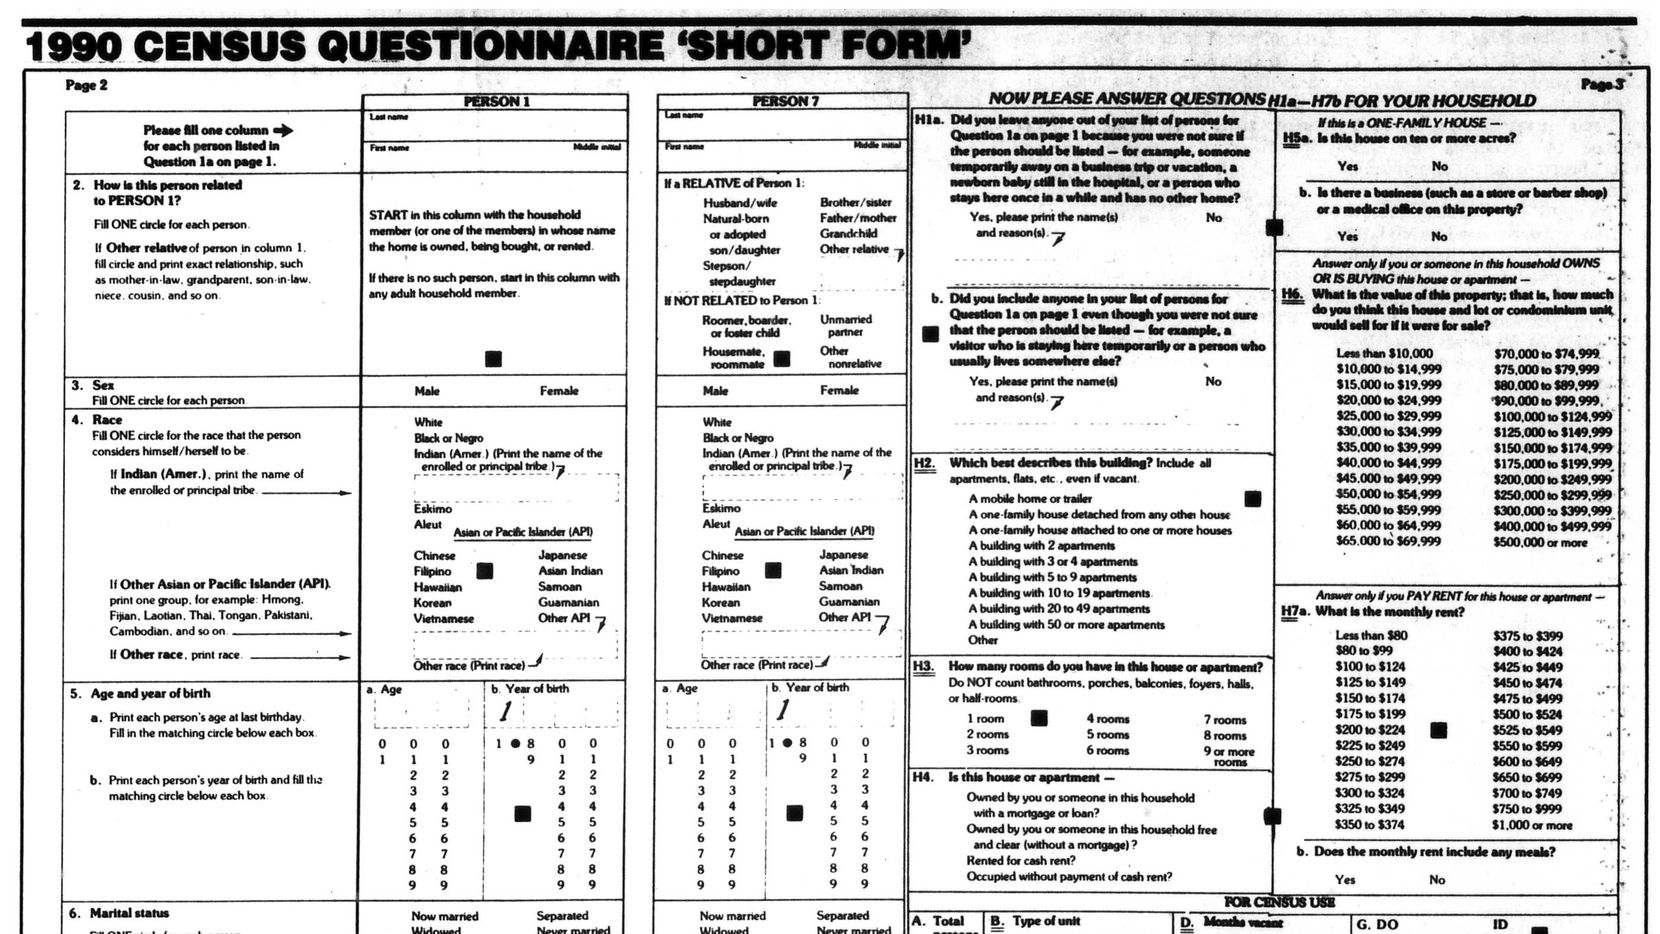 1990 census 'short form' as it appeared in the Feb. 12, 1990 edition of The Dallas Morning News.